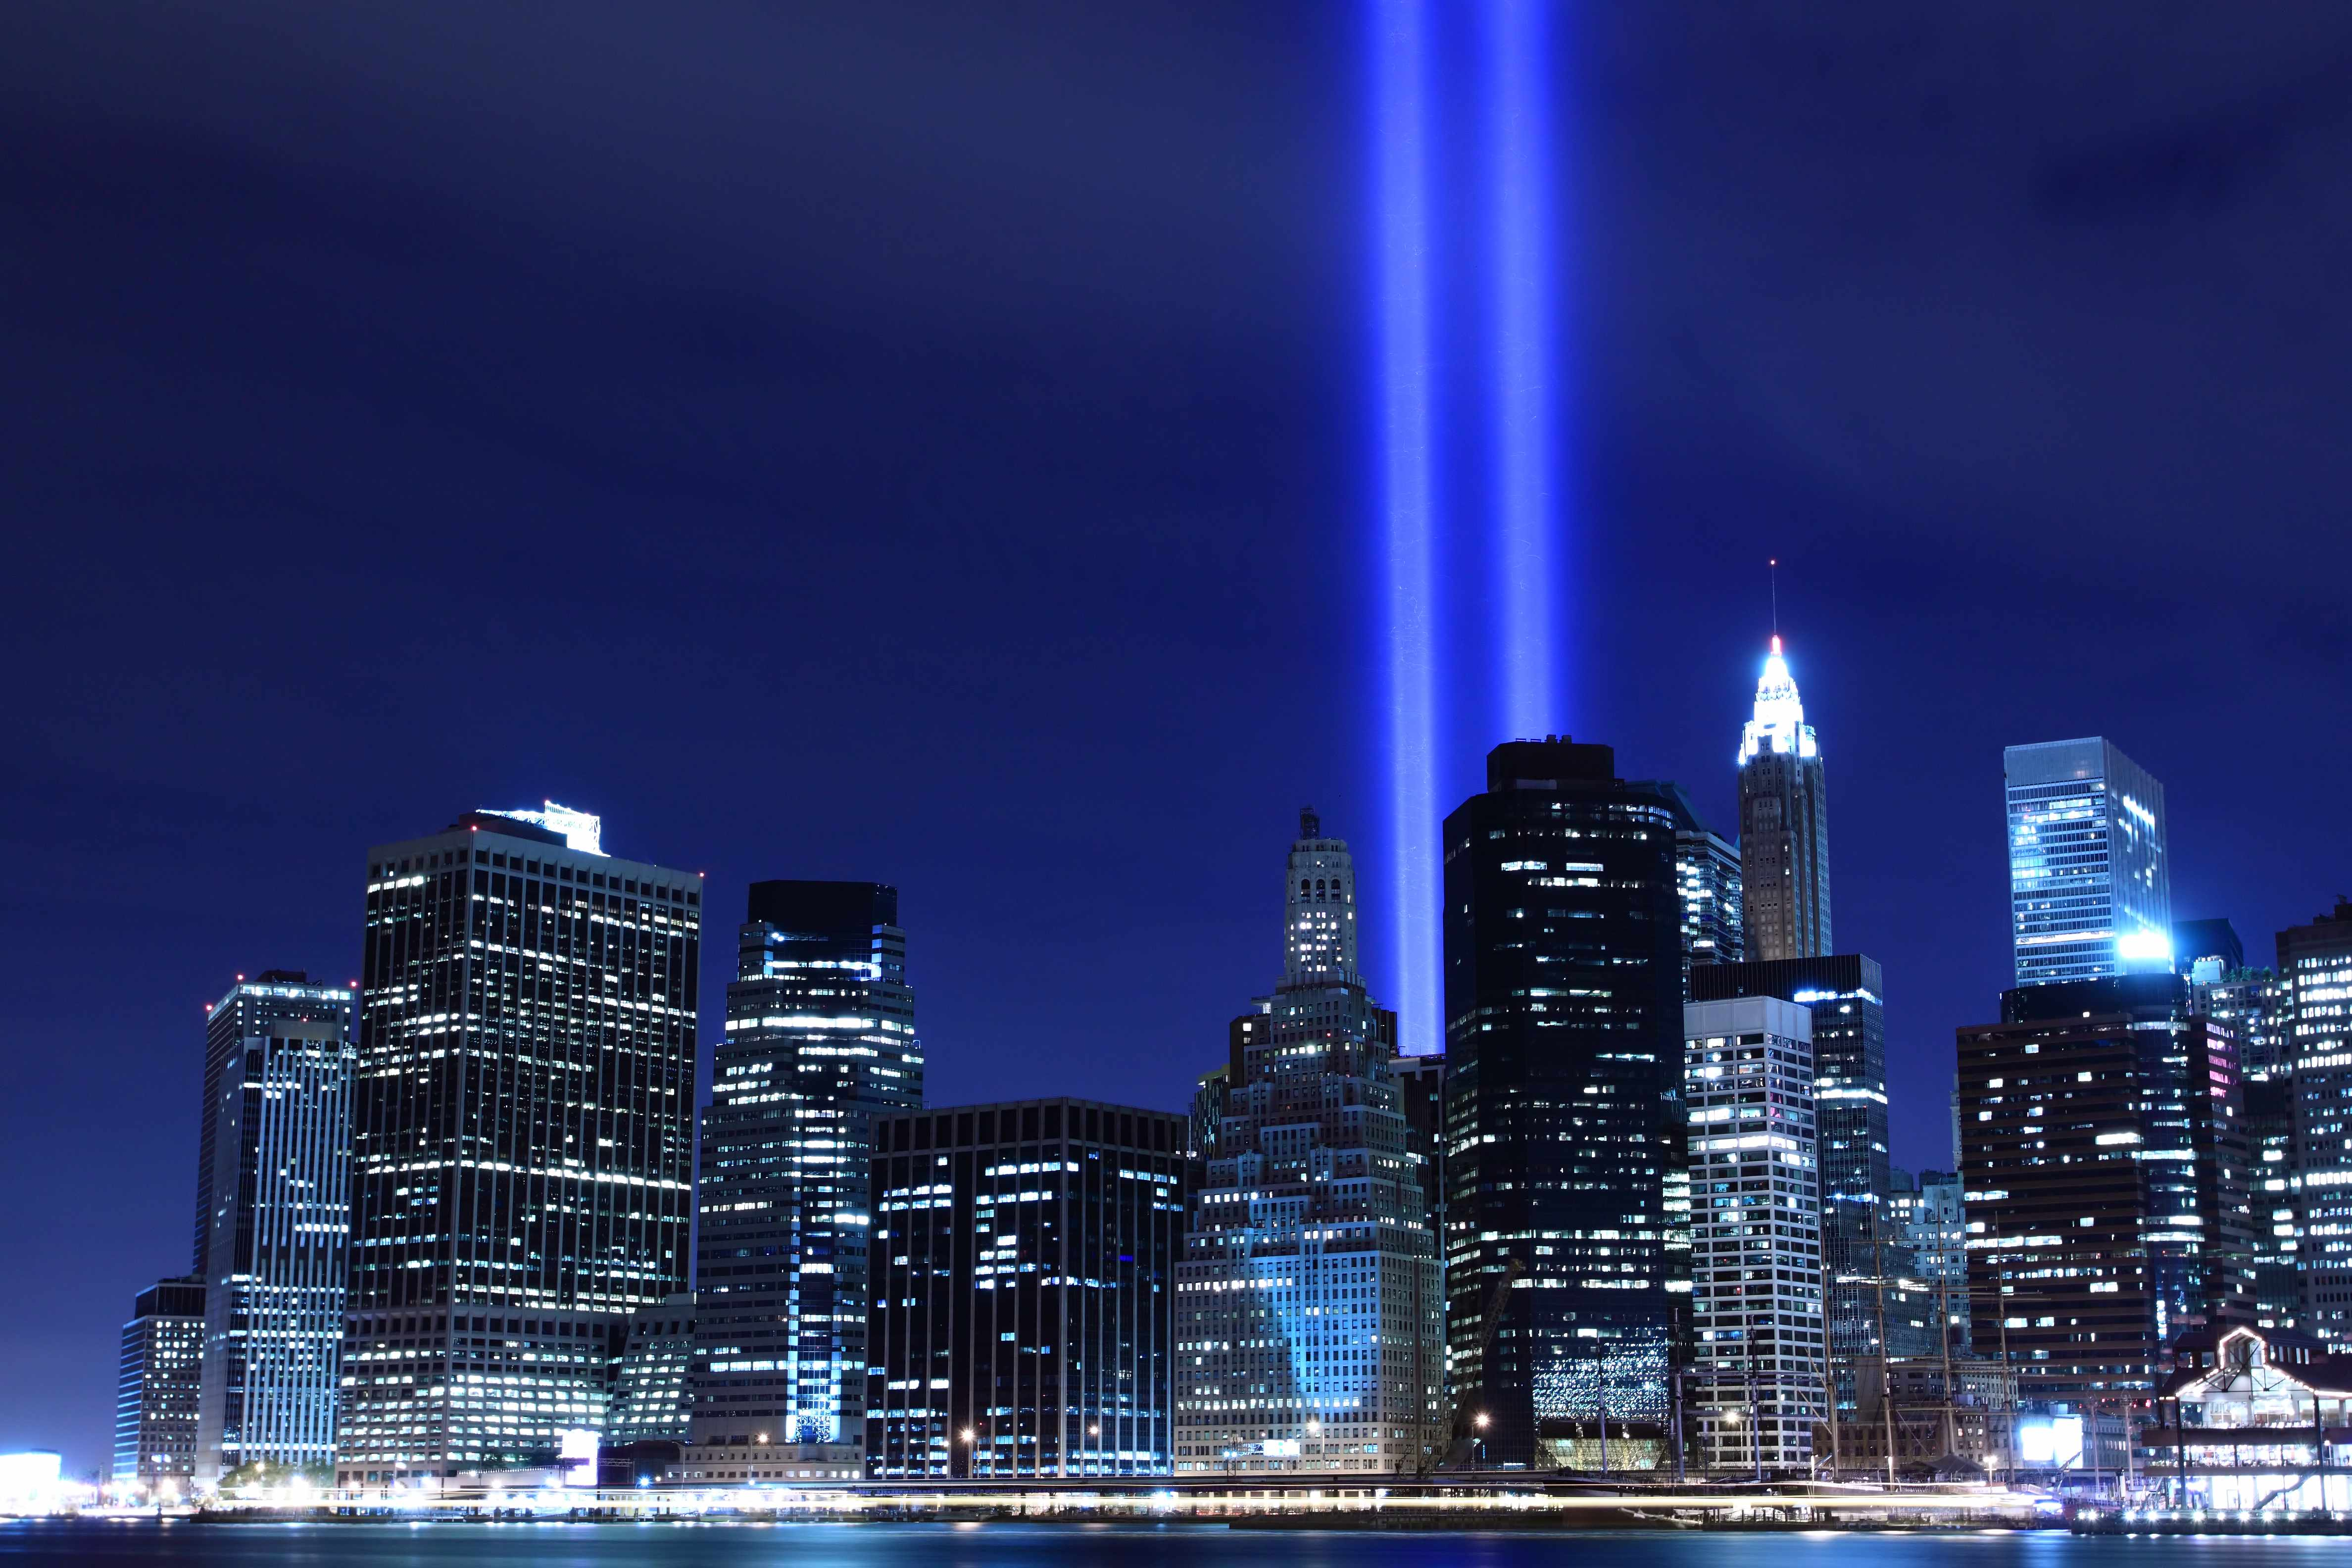 night skyline of New York City with two beams of light for 9-11 remembrance